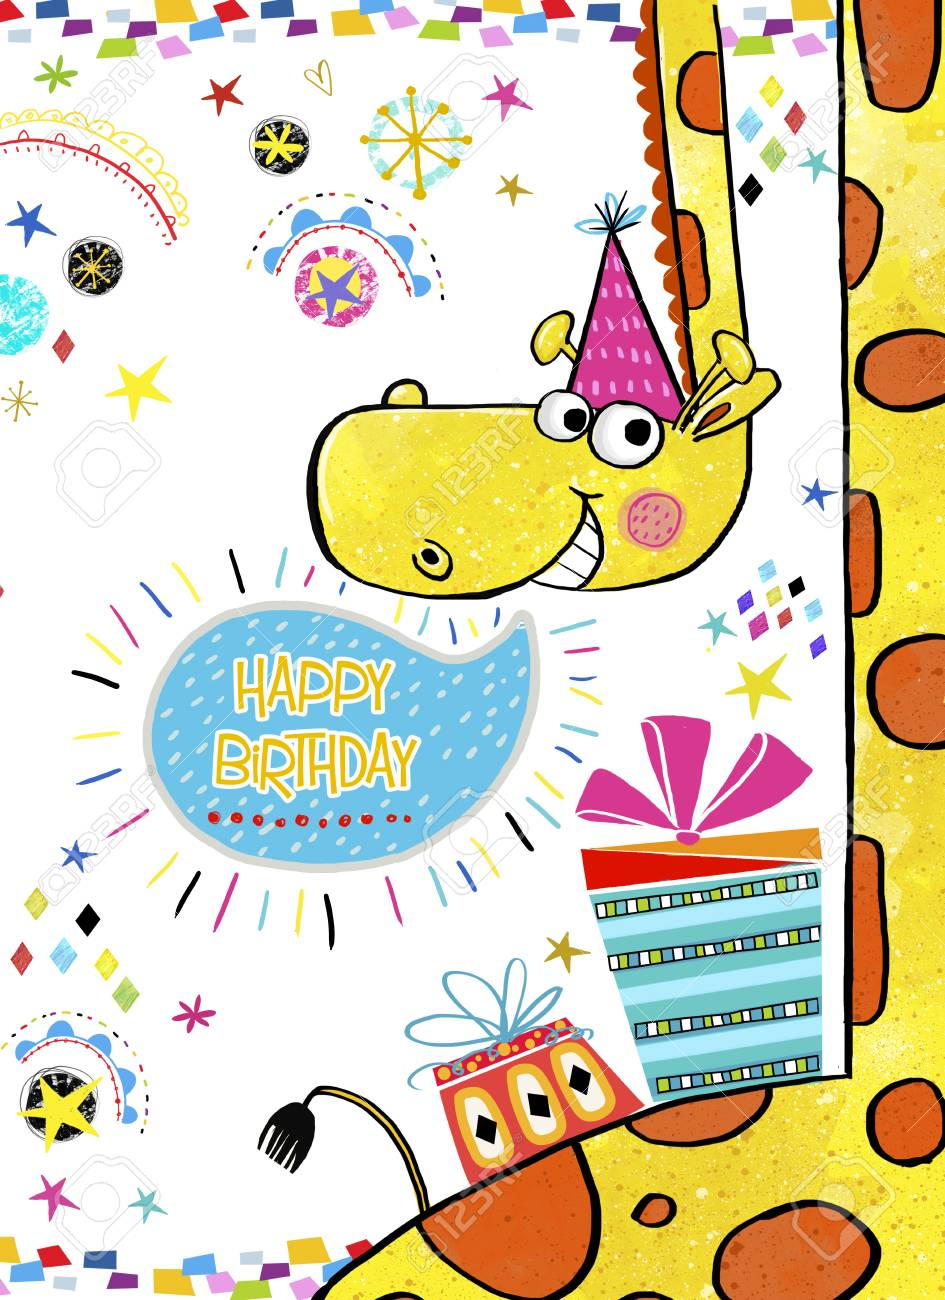 Giraffe With Gifts.Happy Birthday Invitation.Birthday Greeting ...